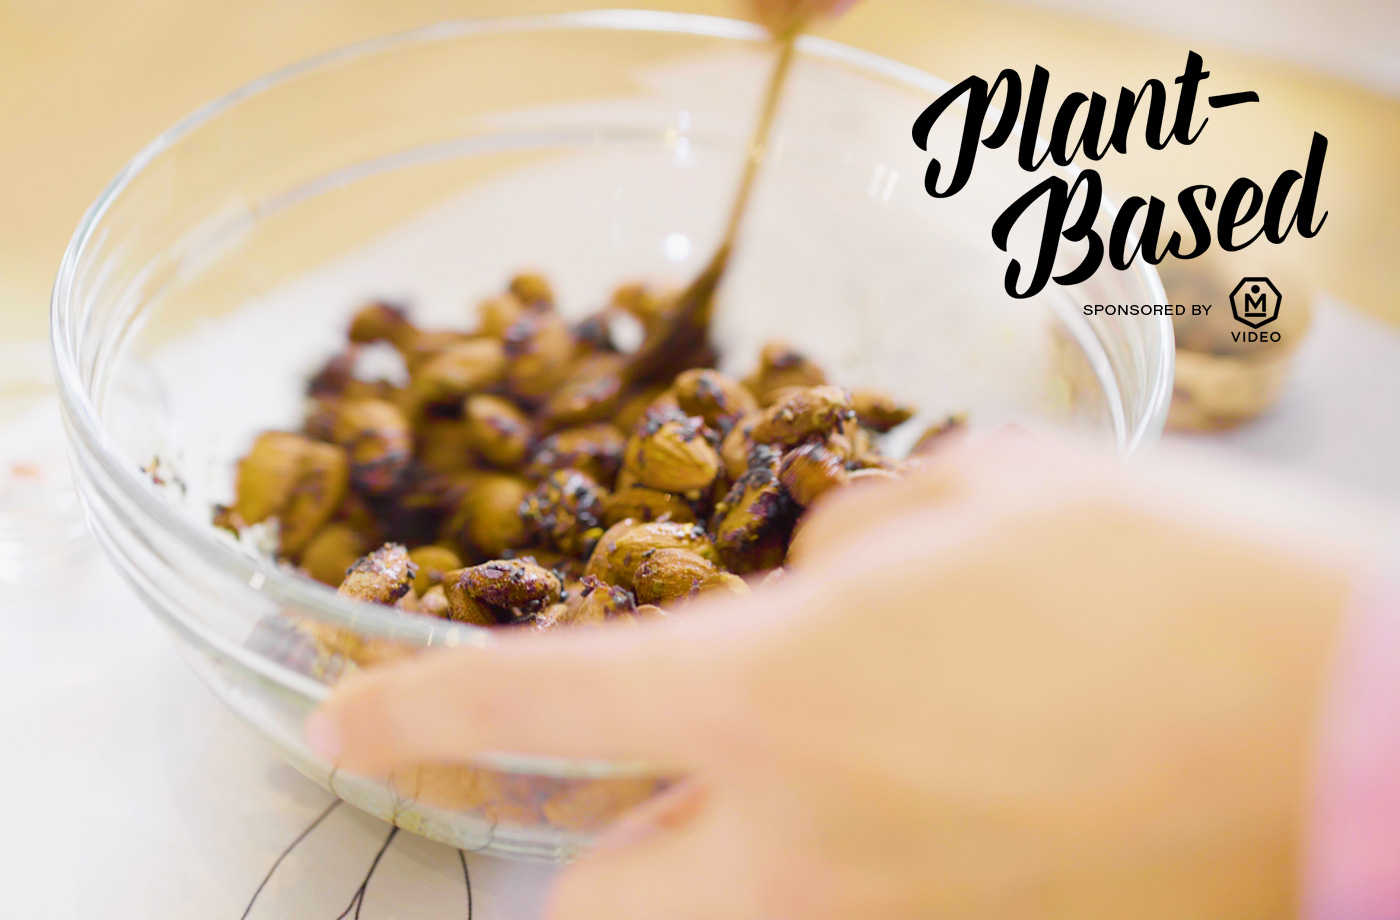 This high-protein, brain-boosting trail mix is going to be your new favorite snack